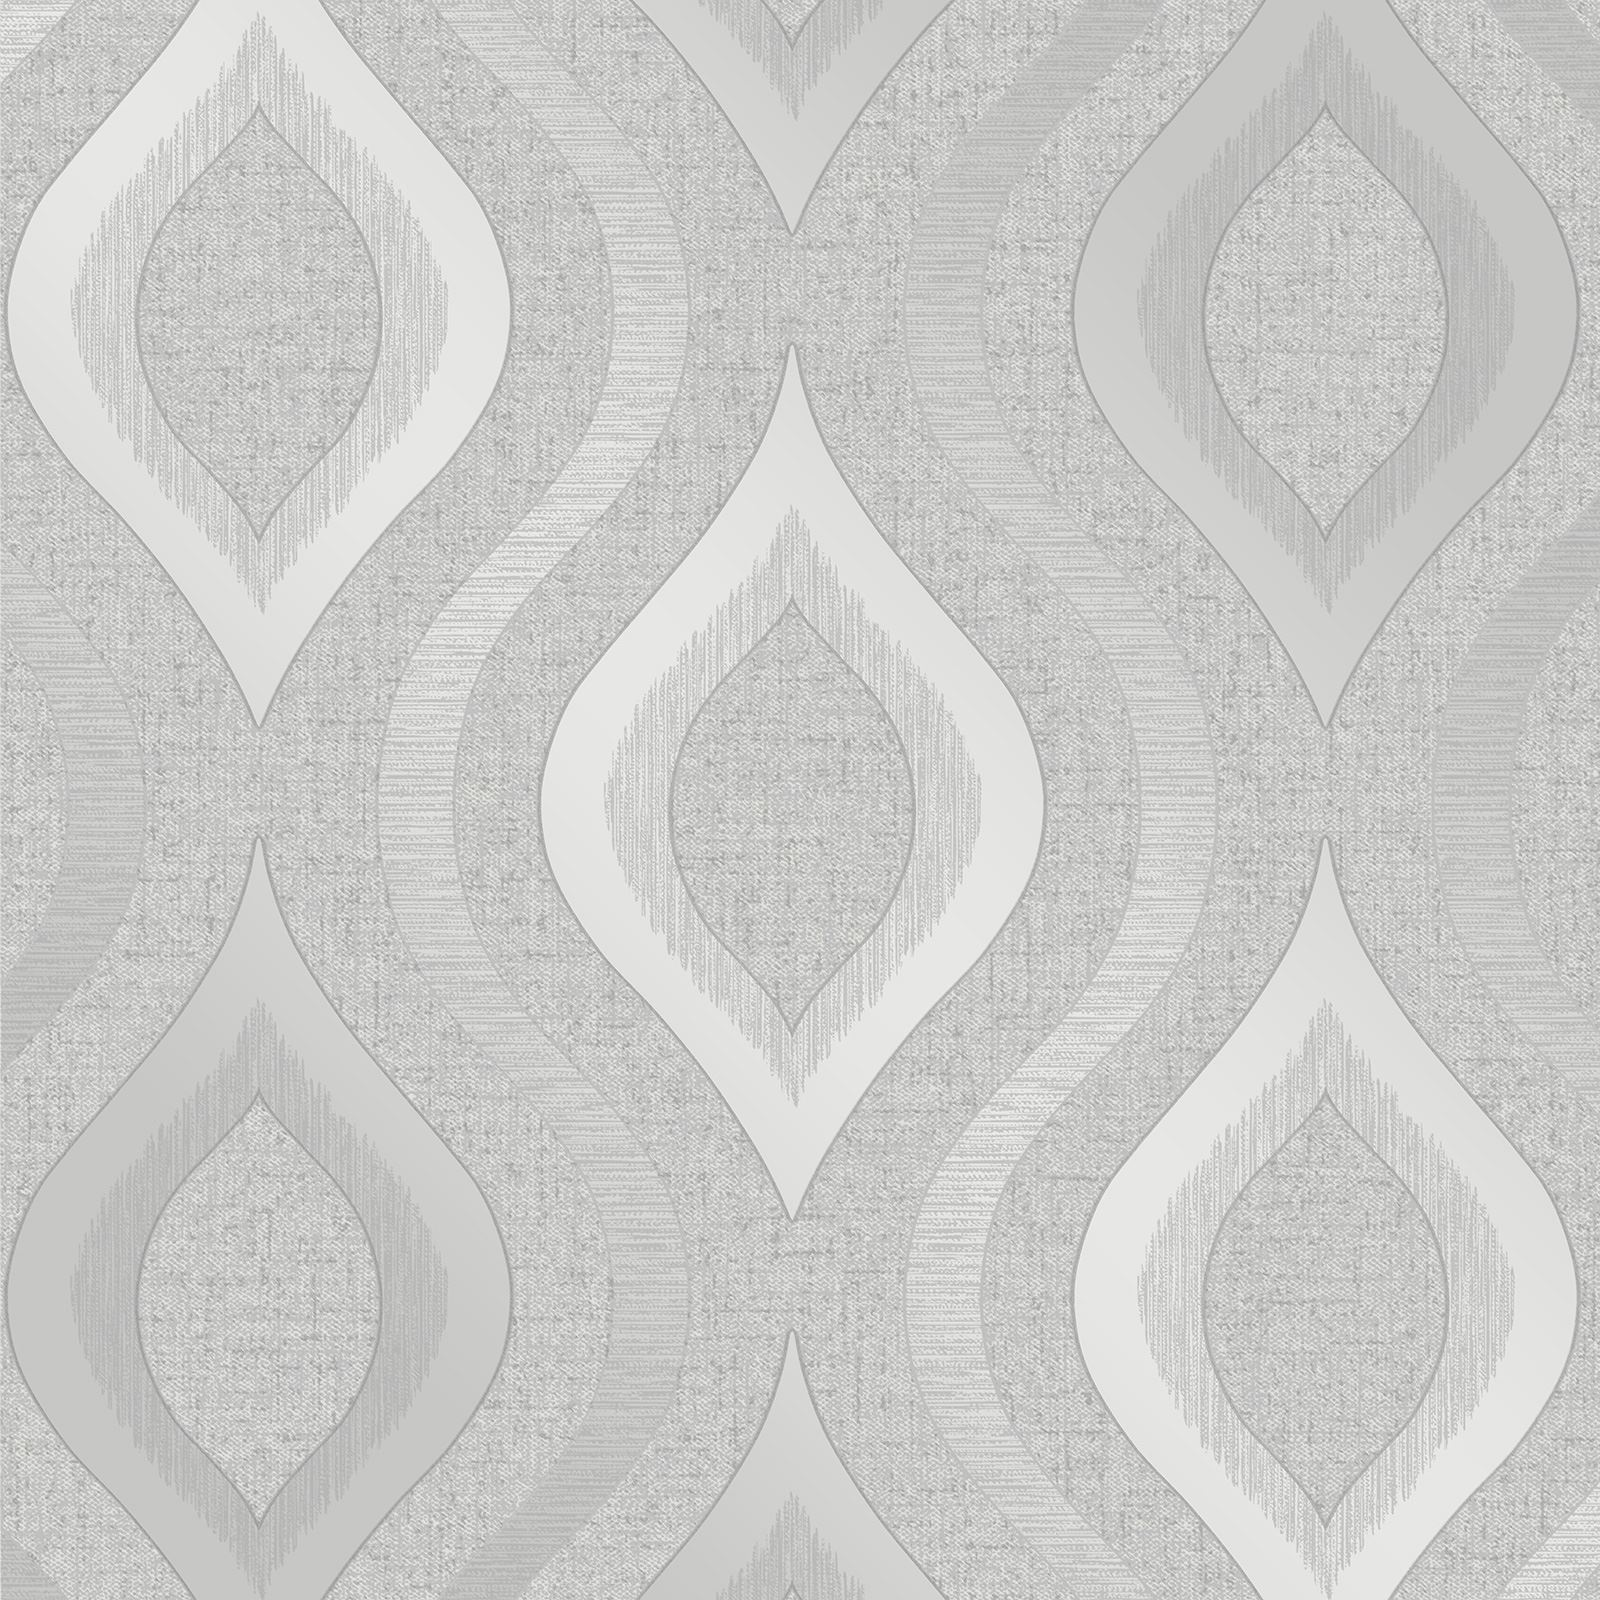 FINE DECOR QUARTZ SILVER GREY WALLPAPER PLAIN STRIPE